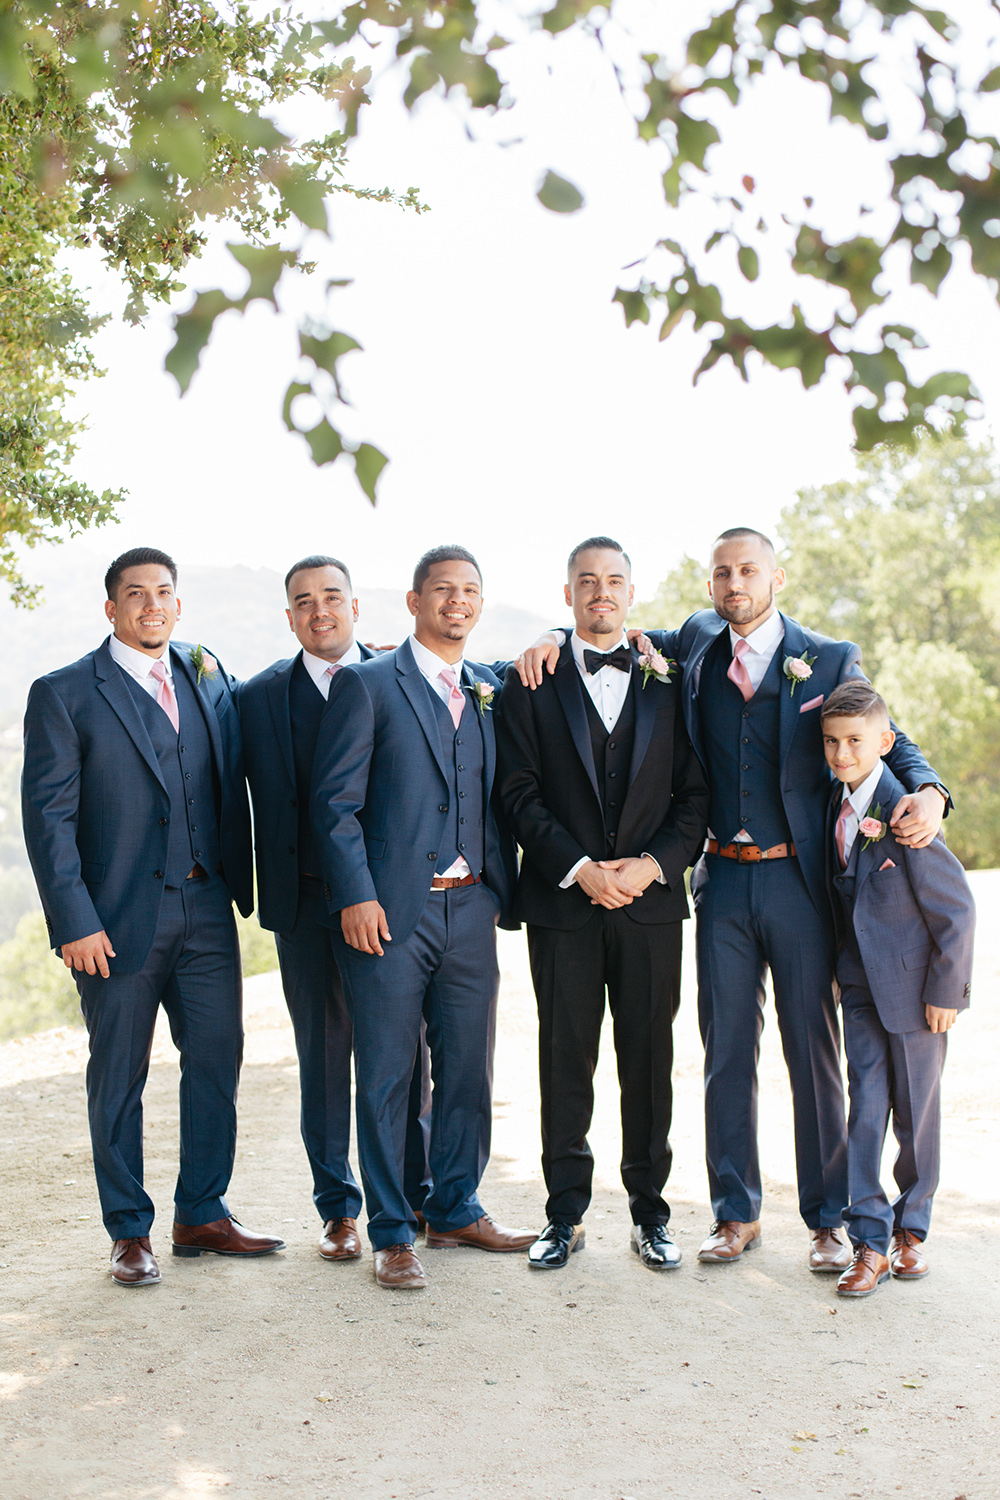 Groom with his groomsmen at a winery in Saratoga, California.